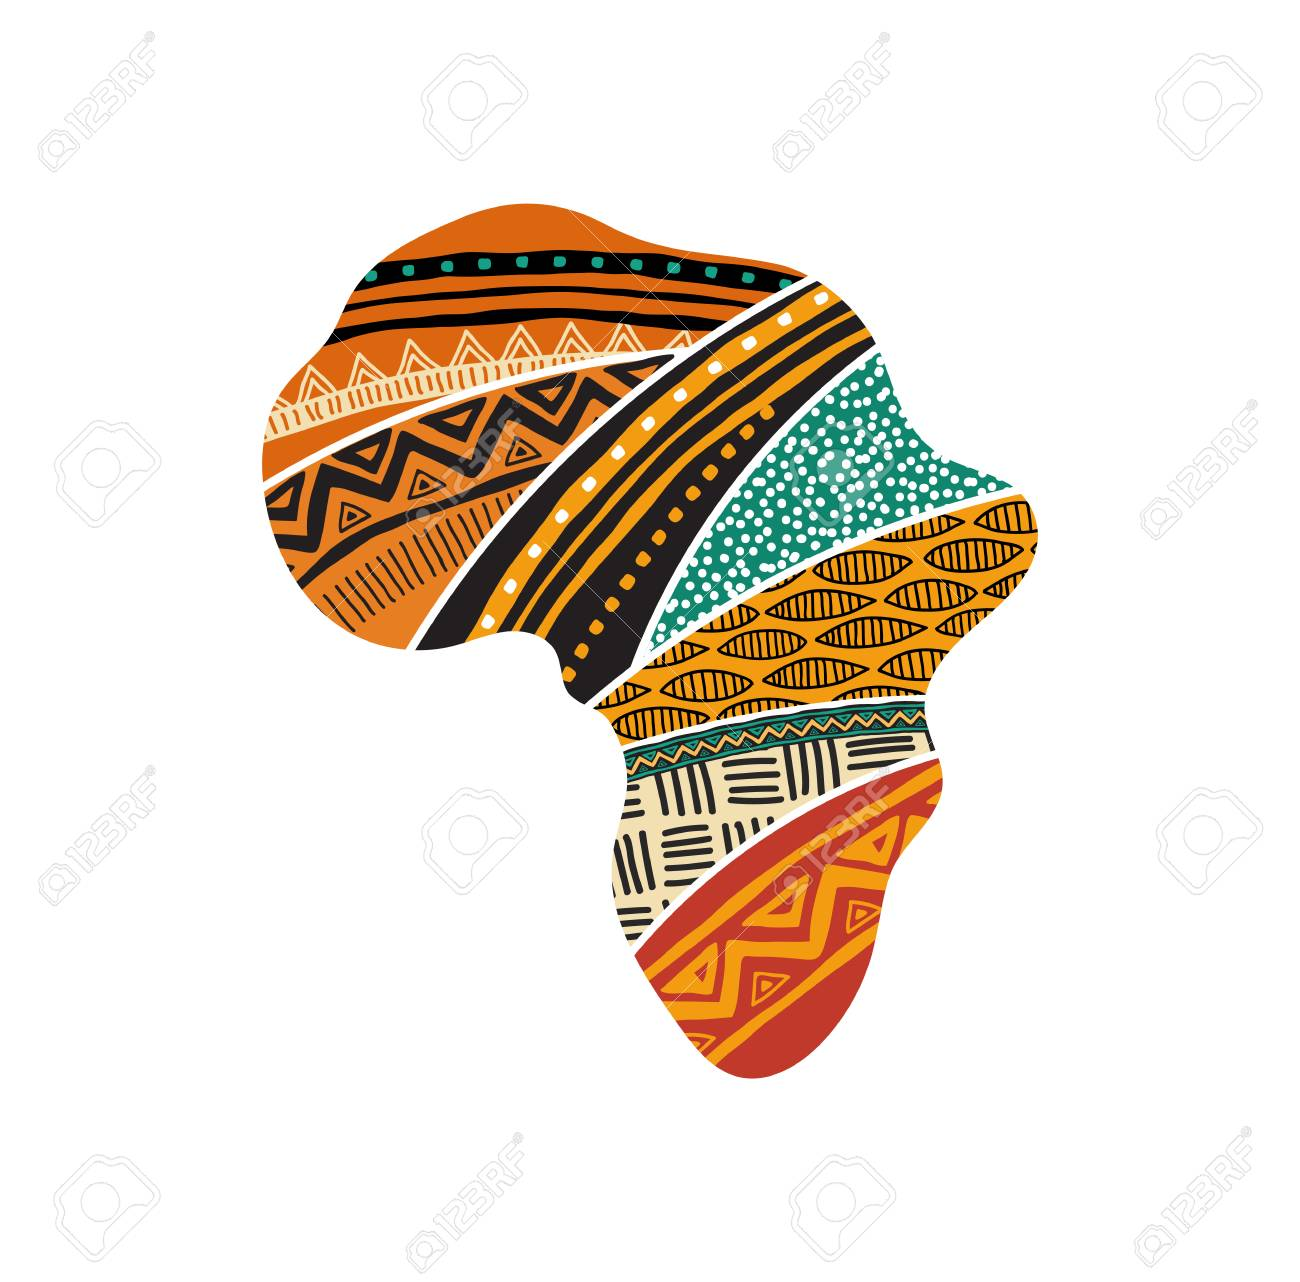 African Map Silhouette With A Traditional Pattern. Concept Design